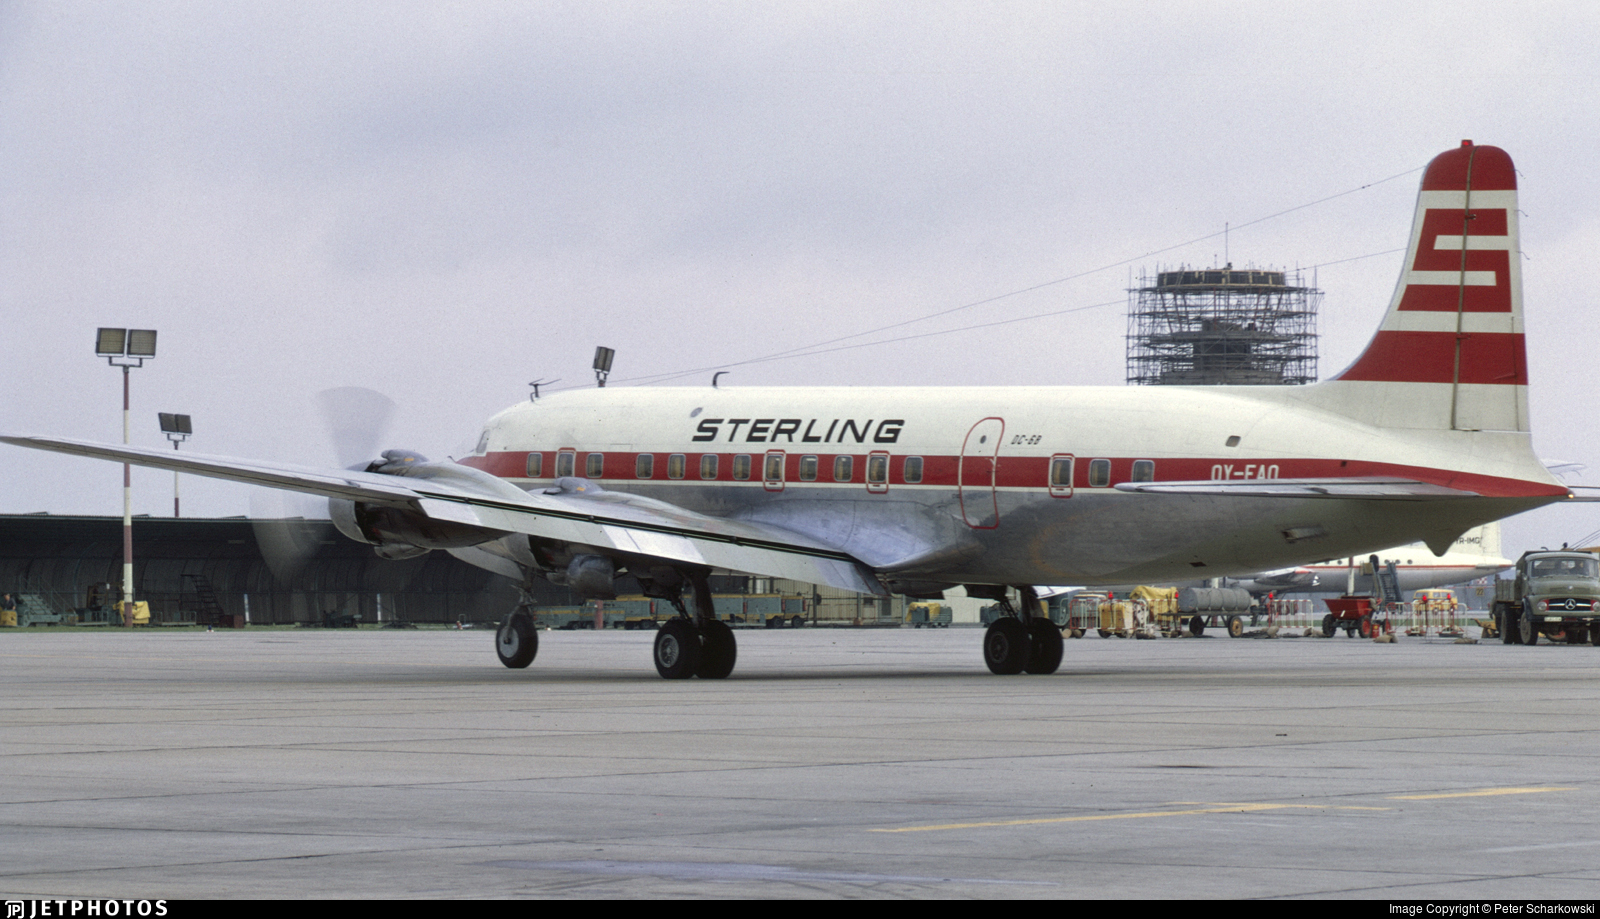 OY-EAO - Douglas DC-6B - Sterling Airways